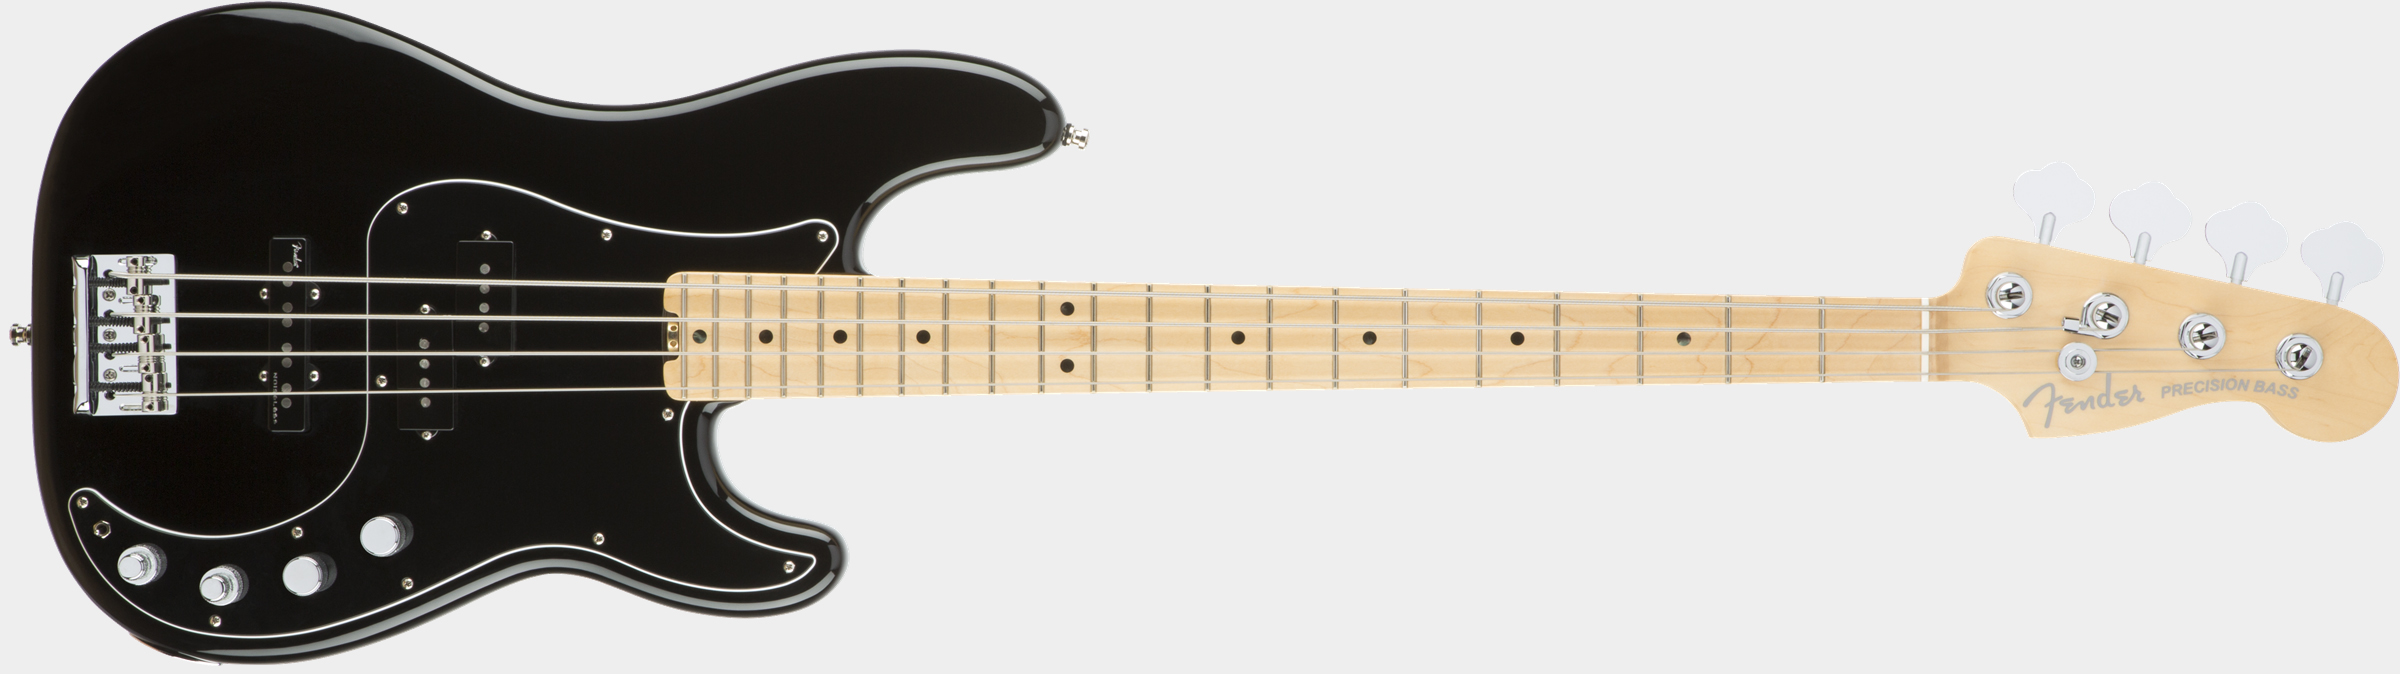 FENDER American Elite Precision Bass Black Front